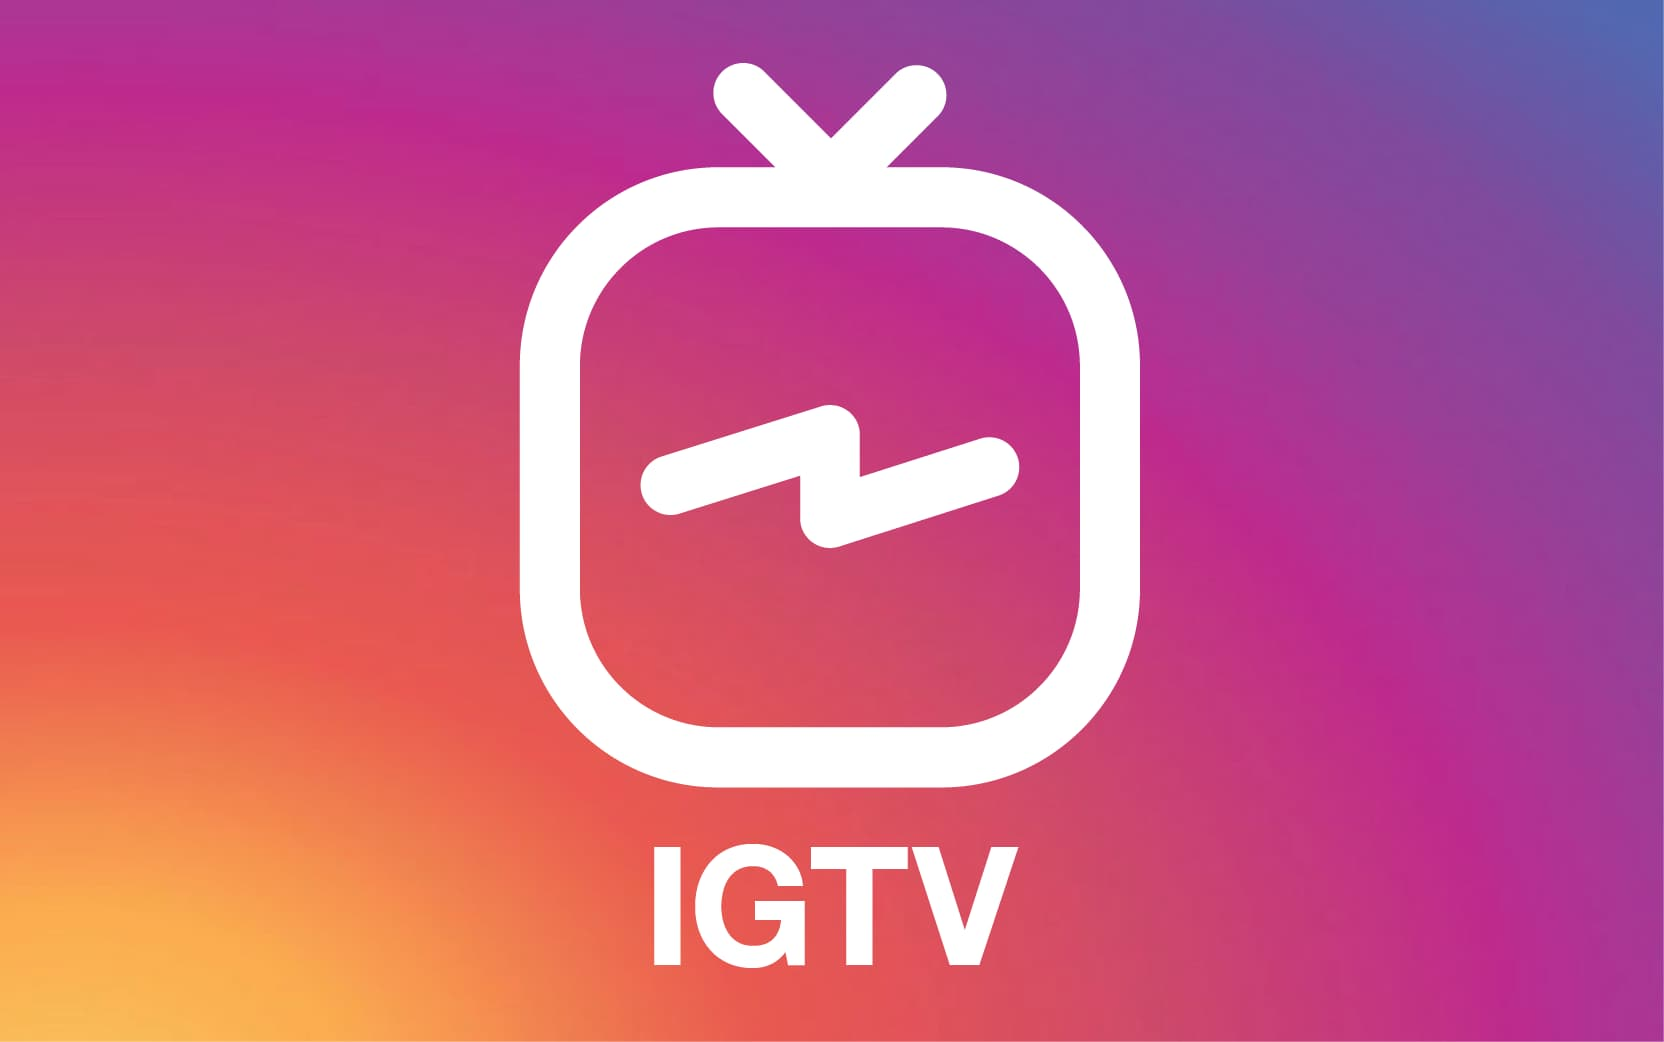 How To Download Igtv Videos To Iphone